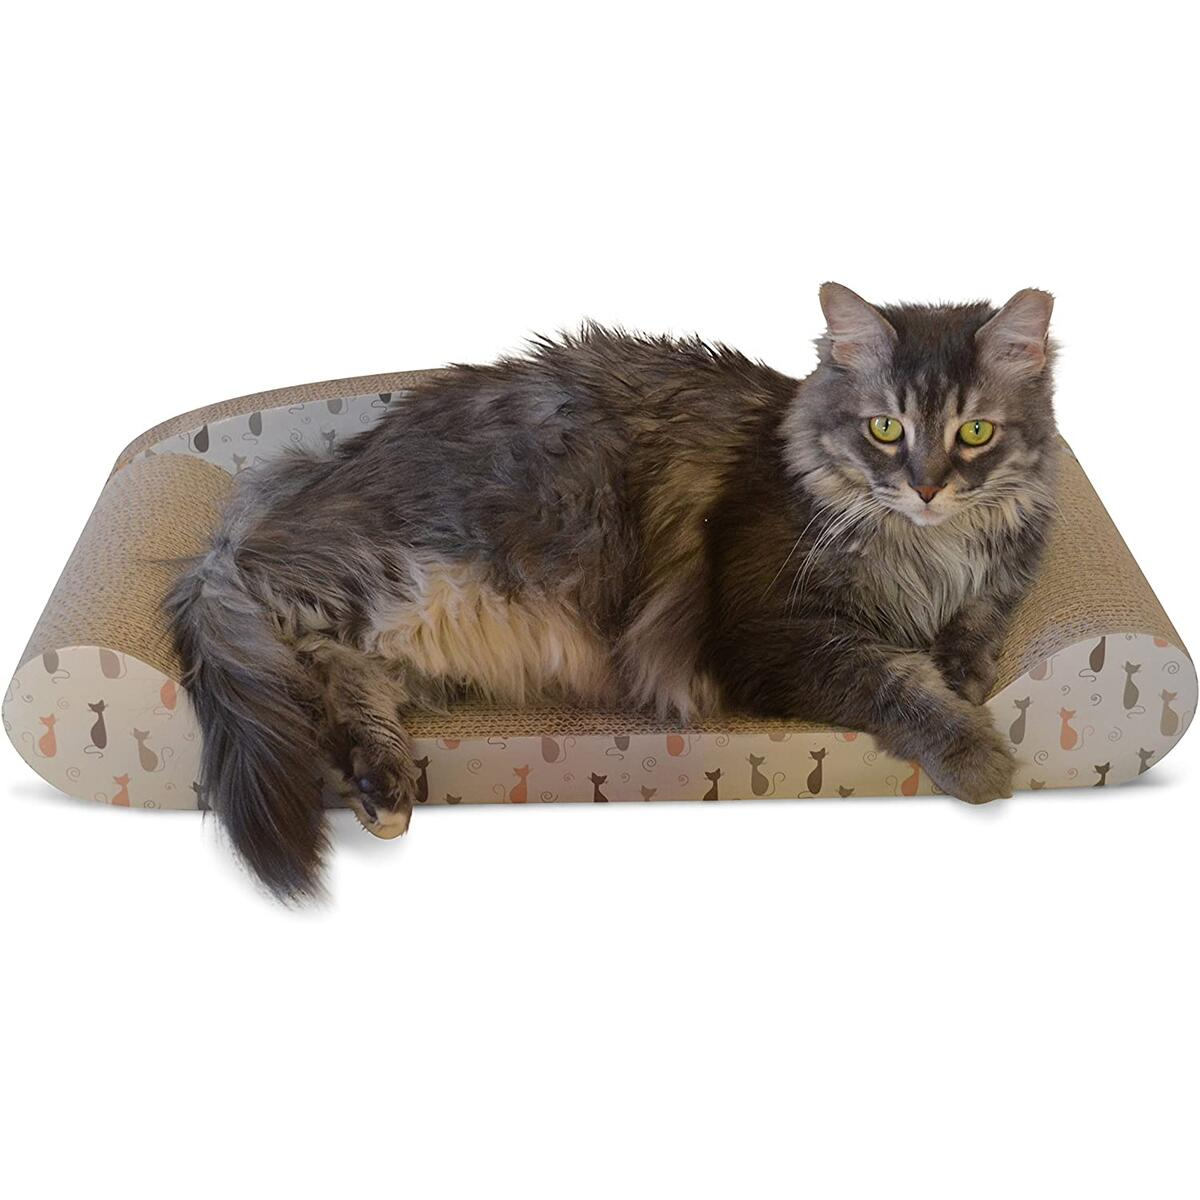 Feline Be Mine Cardboard Cat Scratcher Couch - Kitty Couch Scratching Pad Sofa Bed Protect Furniture Getting Damaged - Kitten Lounger